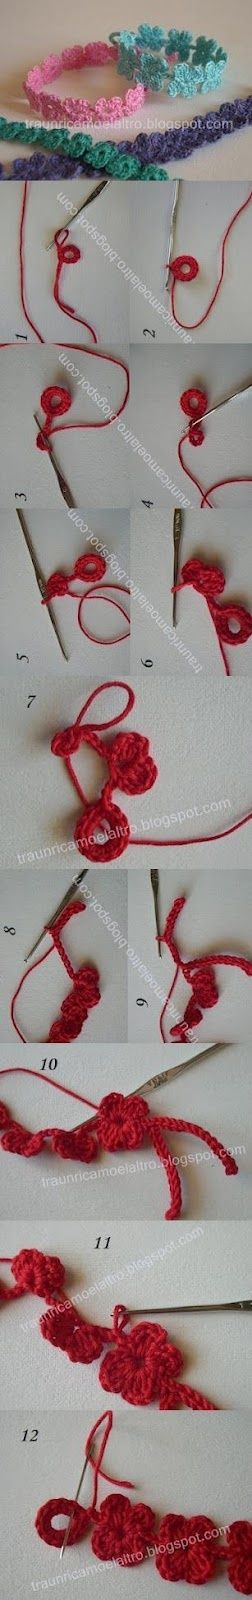 Crochet Bracelet - Tutorial                                                                                                                                                     Mais